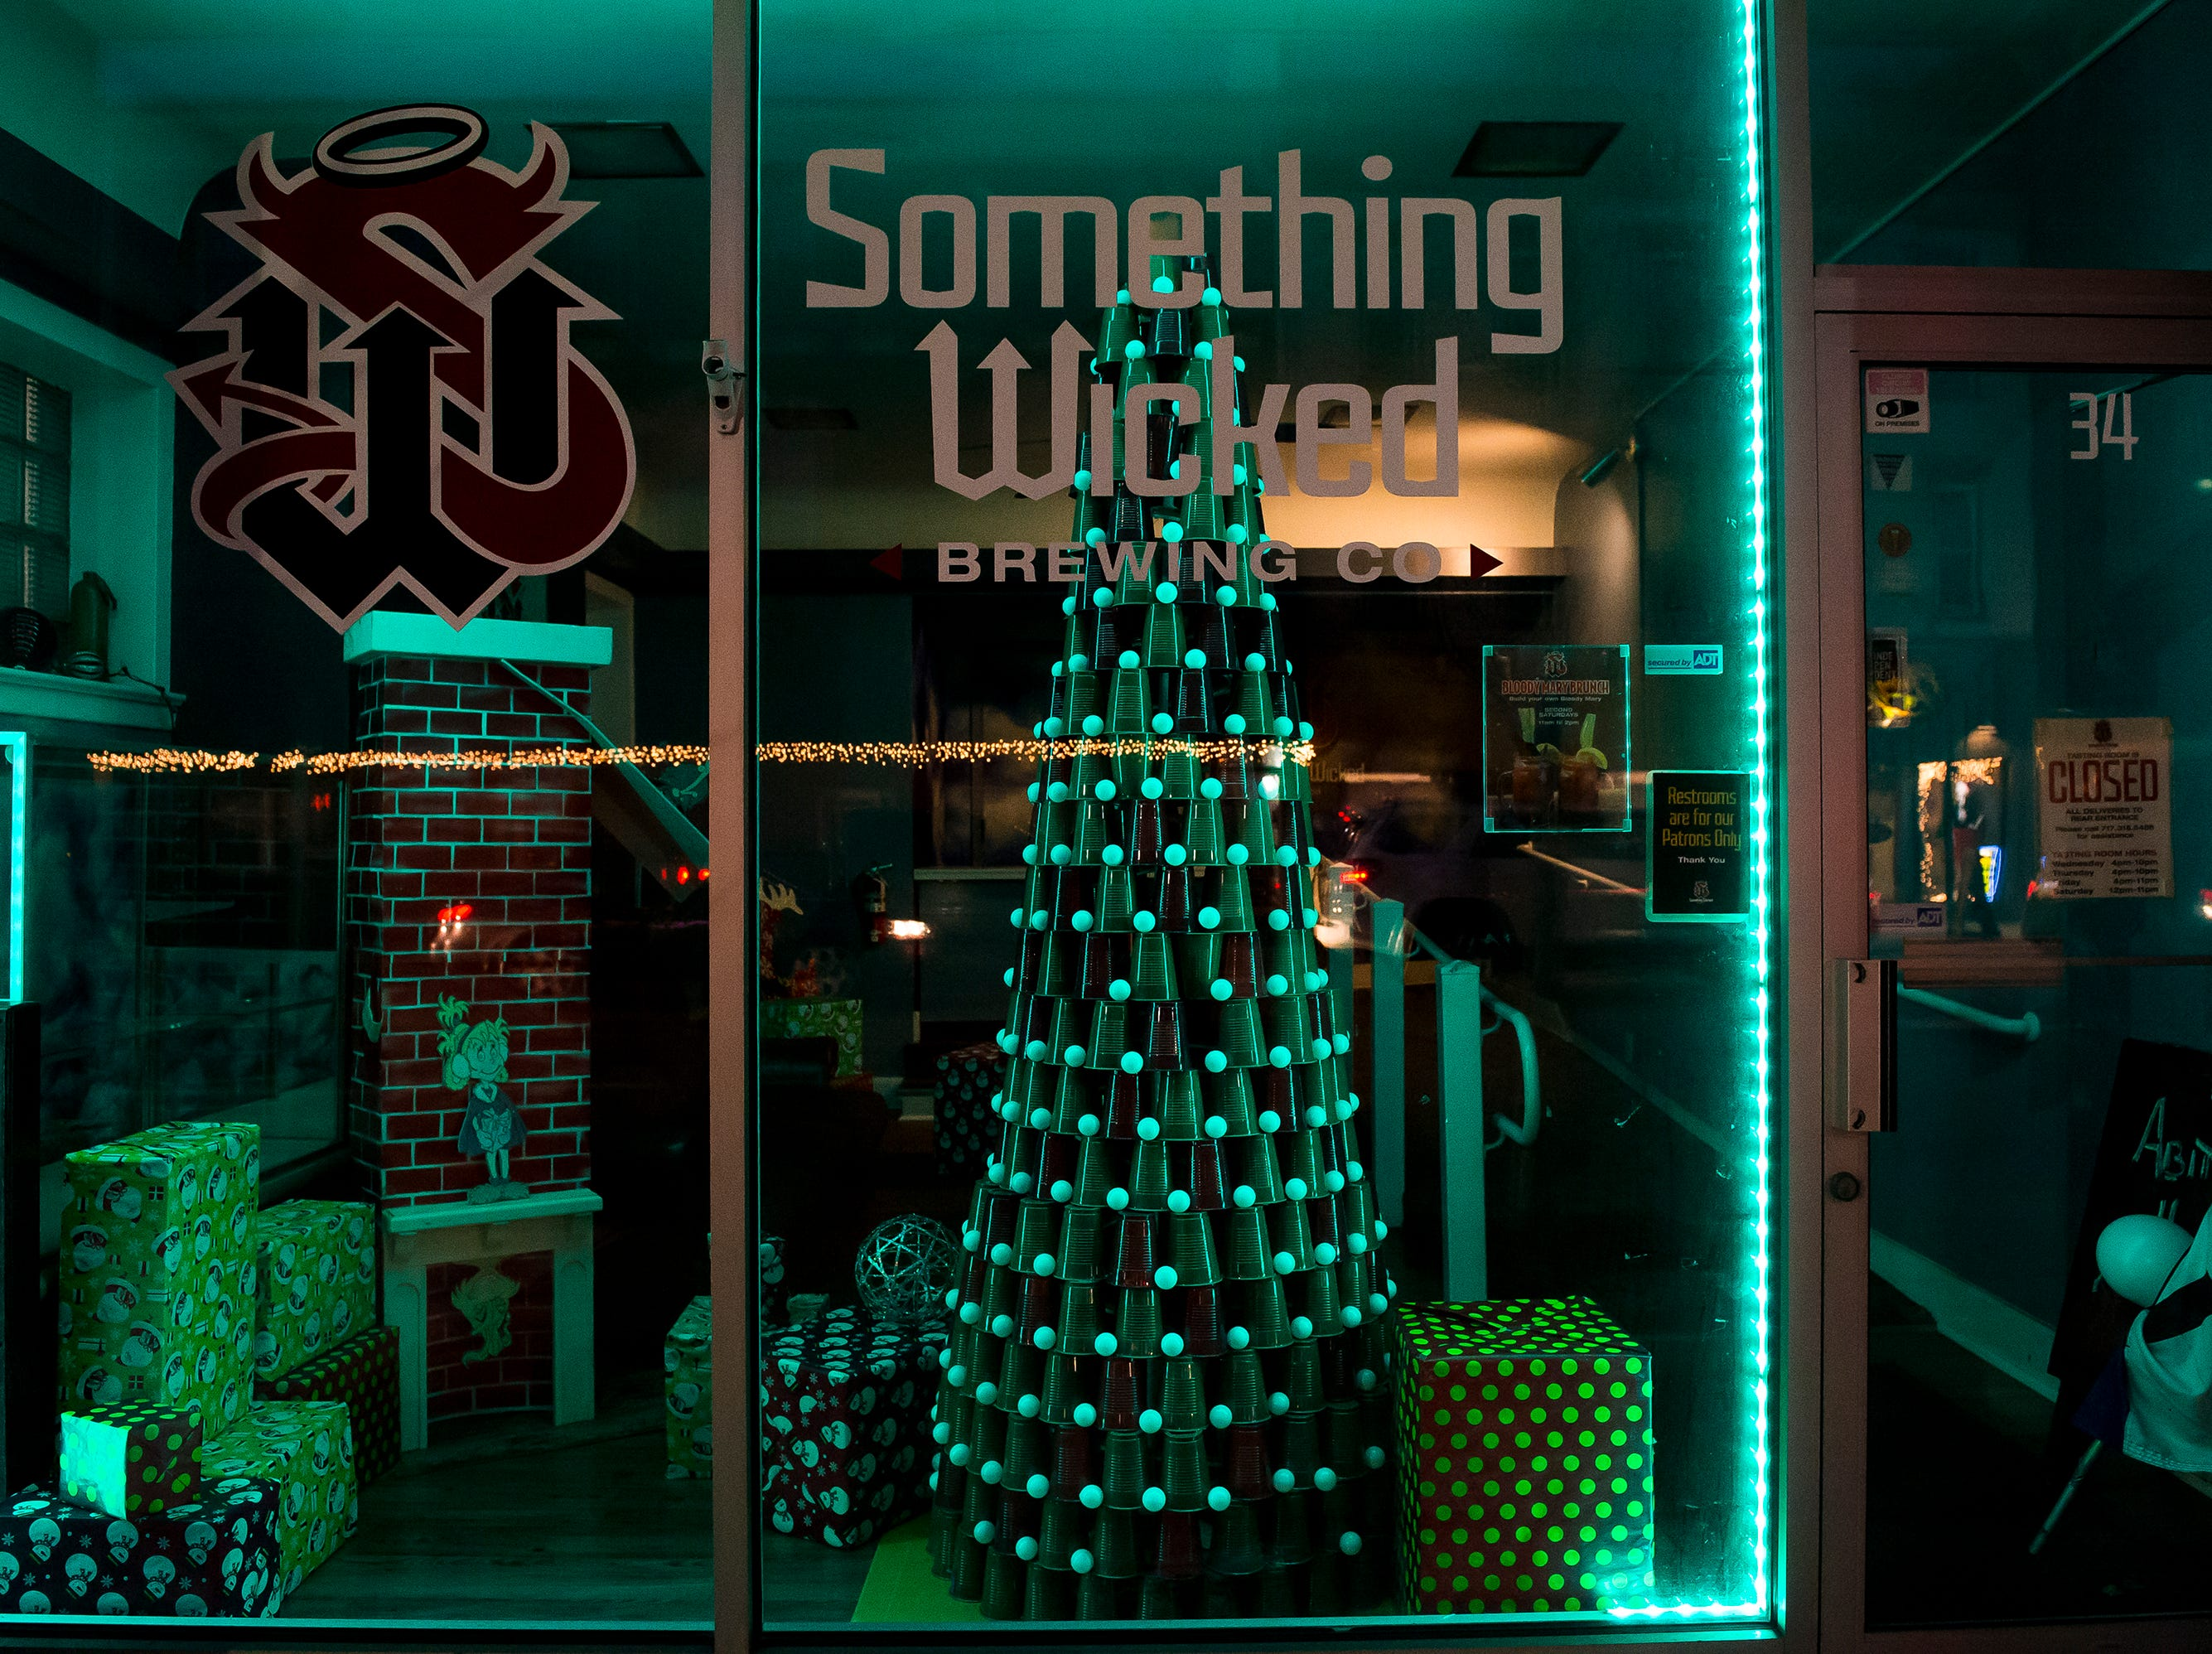 Something Wicked Brewing Co. located at 34 Broadway. Visit mainstreethanover.org for details about Christmas Tree Wars.